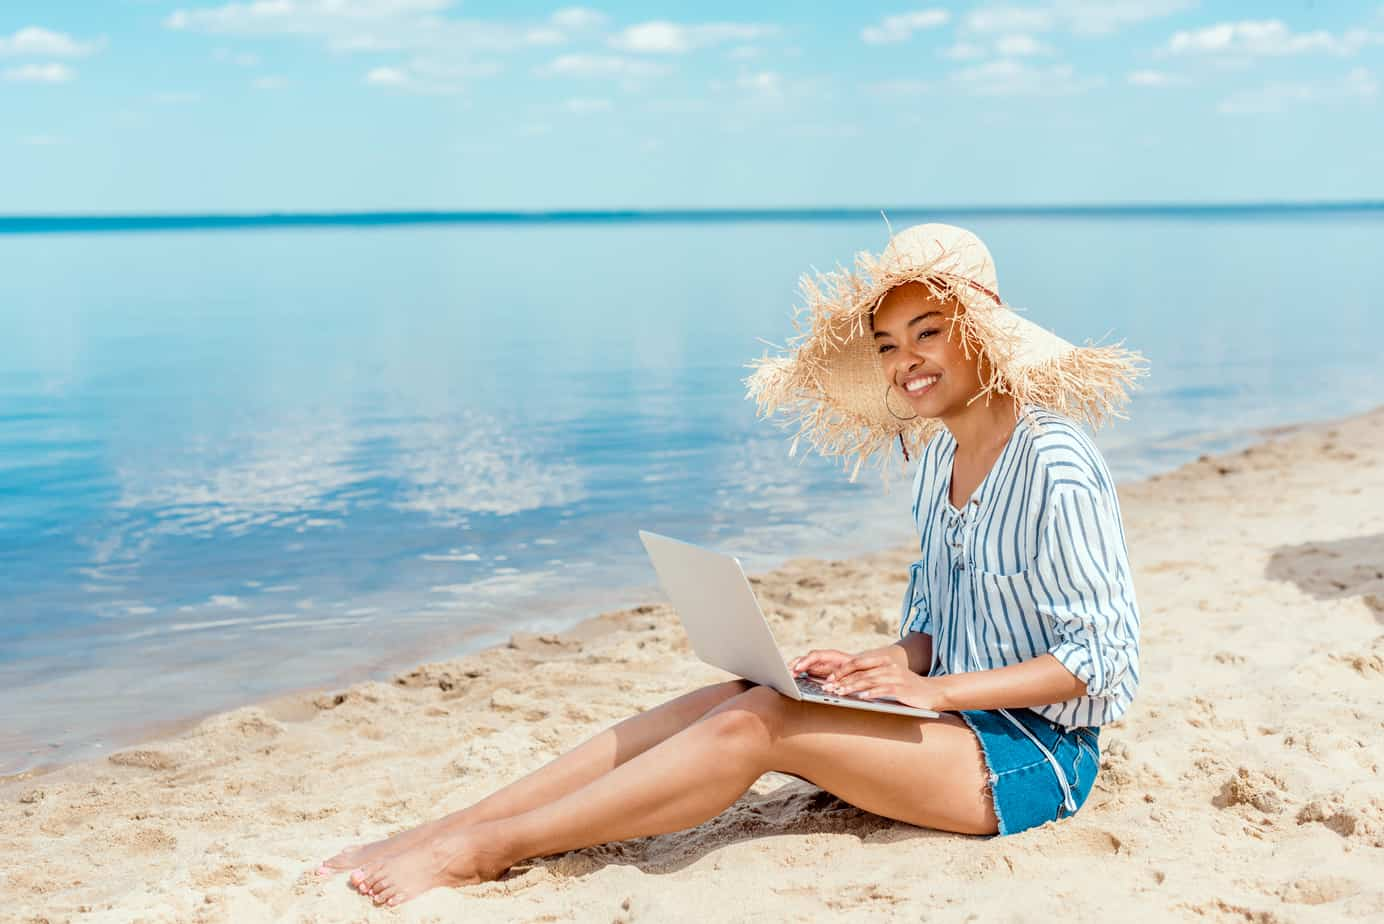 20 Easy Summer Jobs that Offer a Fun Way to Make Some Money